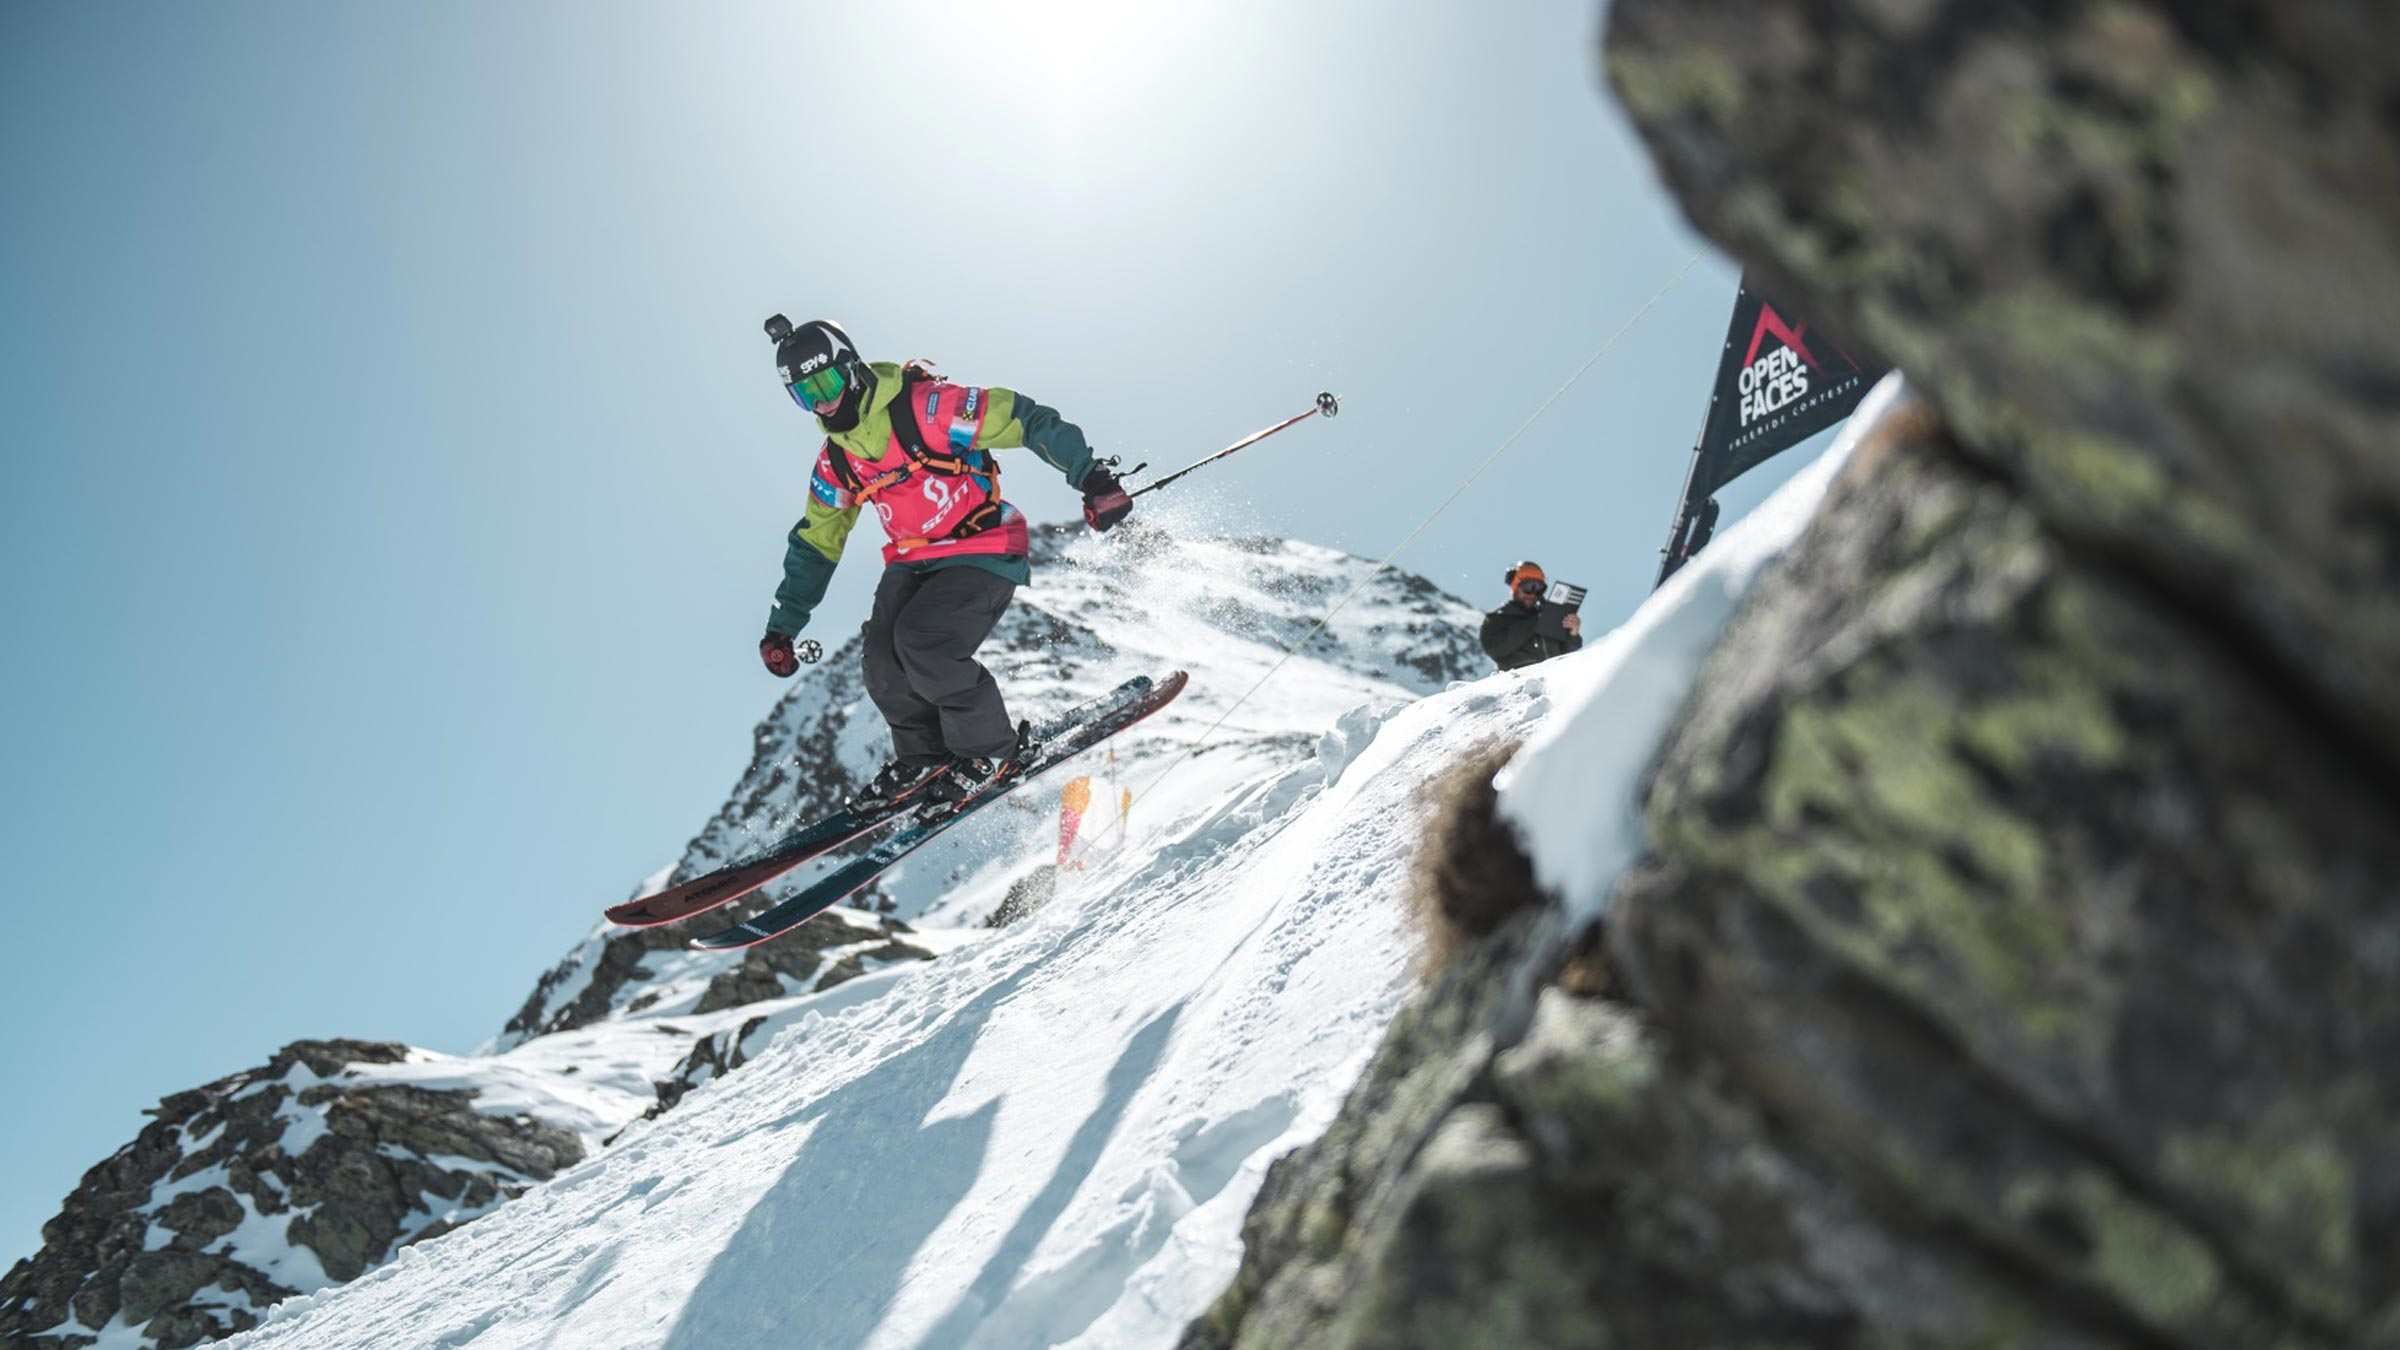 Vom 4*FWQ Obergurgl-Hochgurgl in die Freeride World Tour